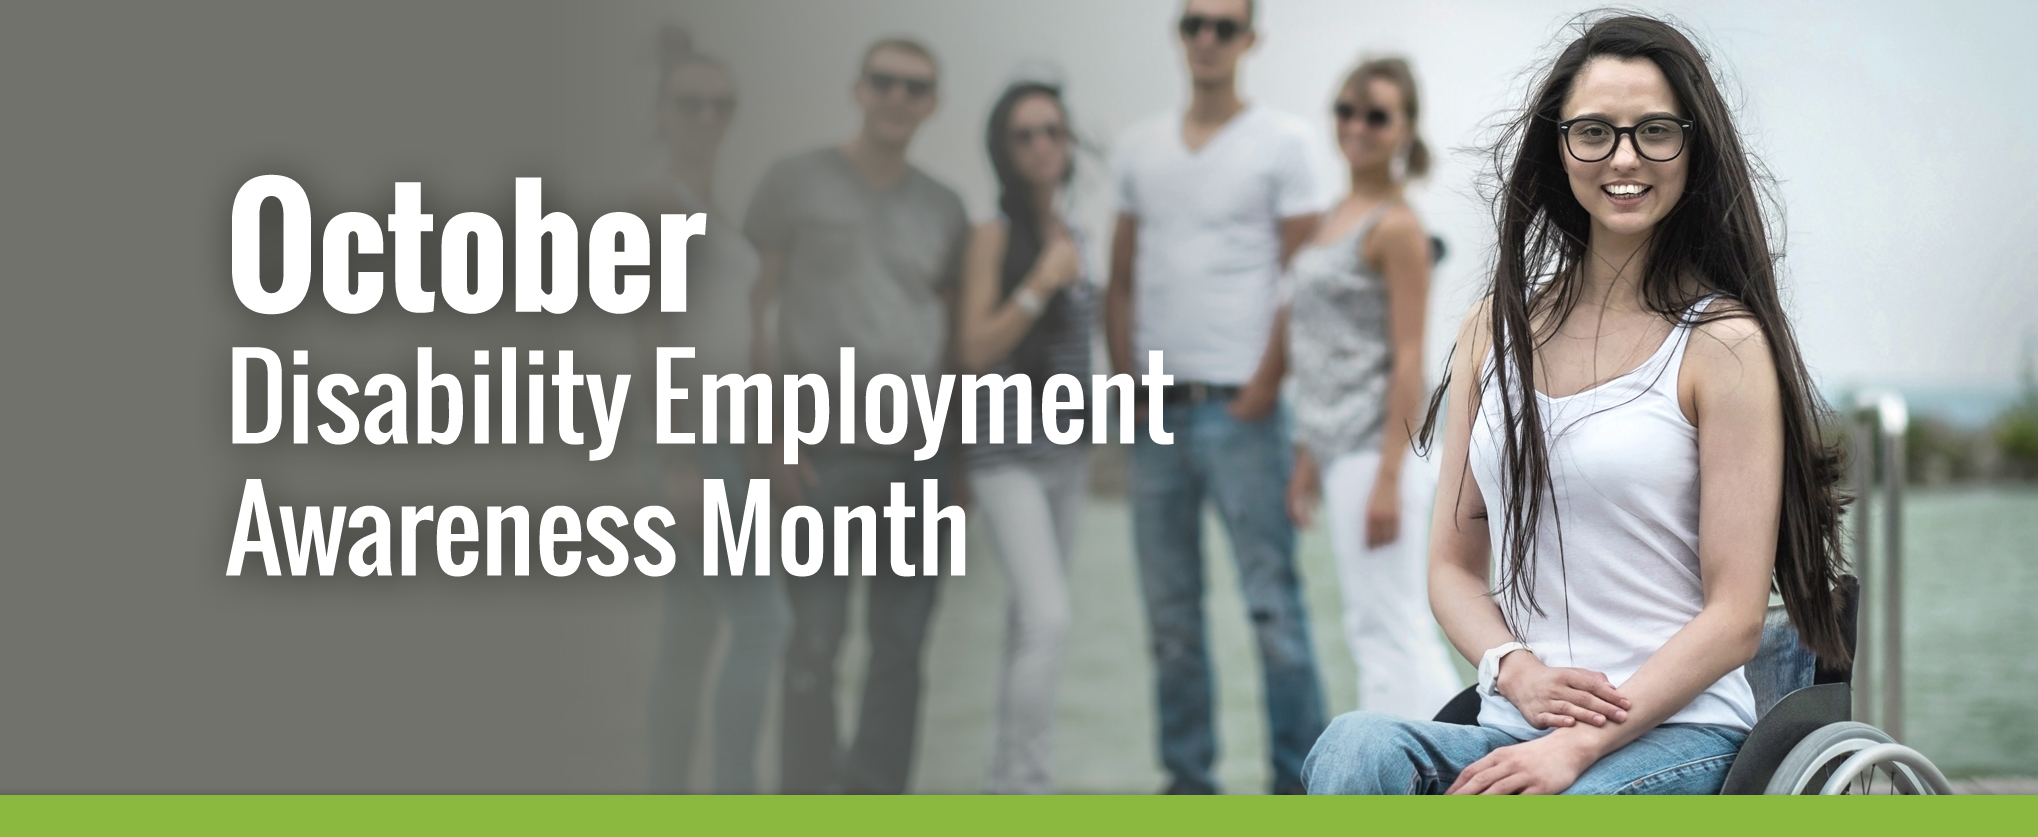 October is Disability Employment Awareness Month